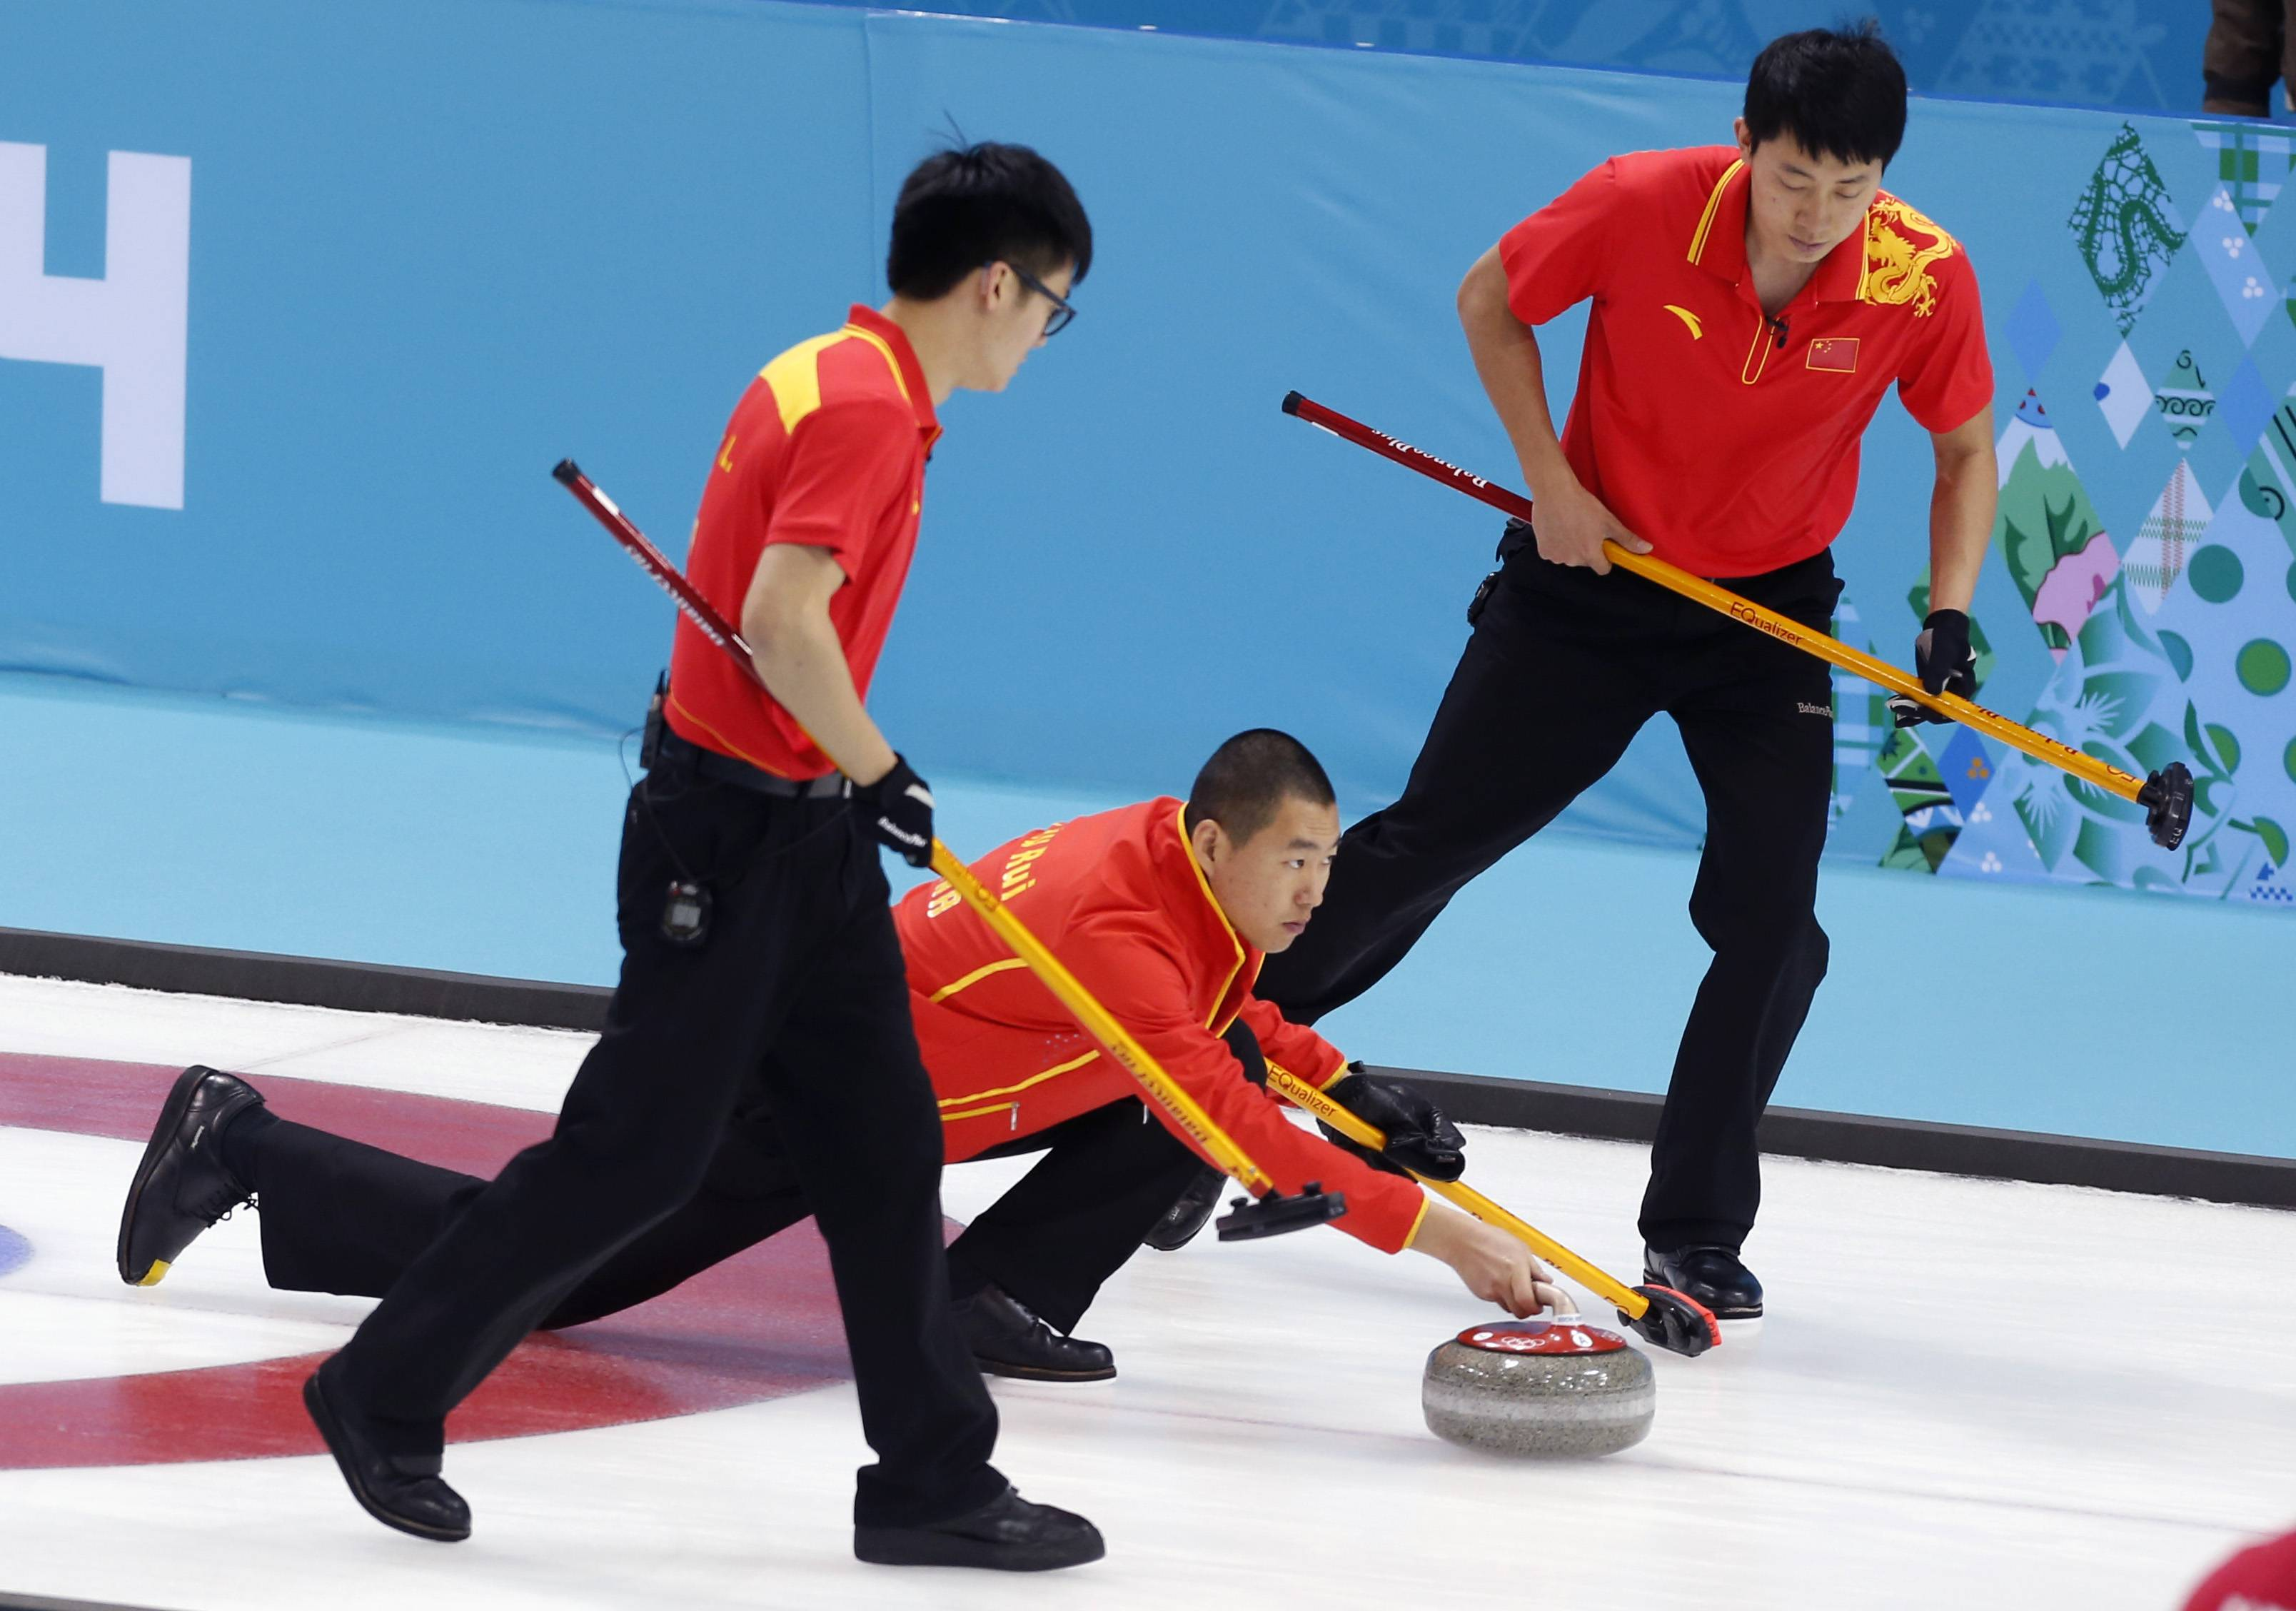 China's skip Liu Rui, center, delivers the rock to sweepers Zang Jialiang, left, and Ba Dexin Monday during men's curling competition against Britain at the 2014 Winter Olympics in Sochi, Russia.